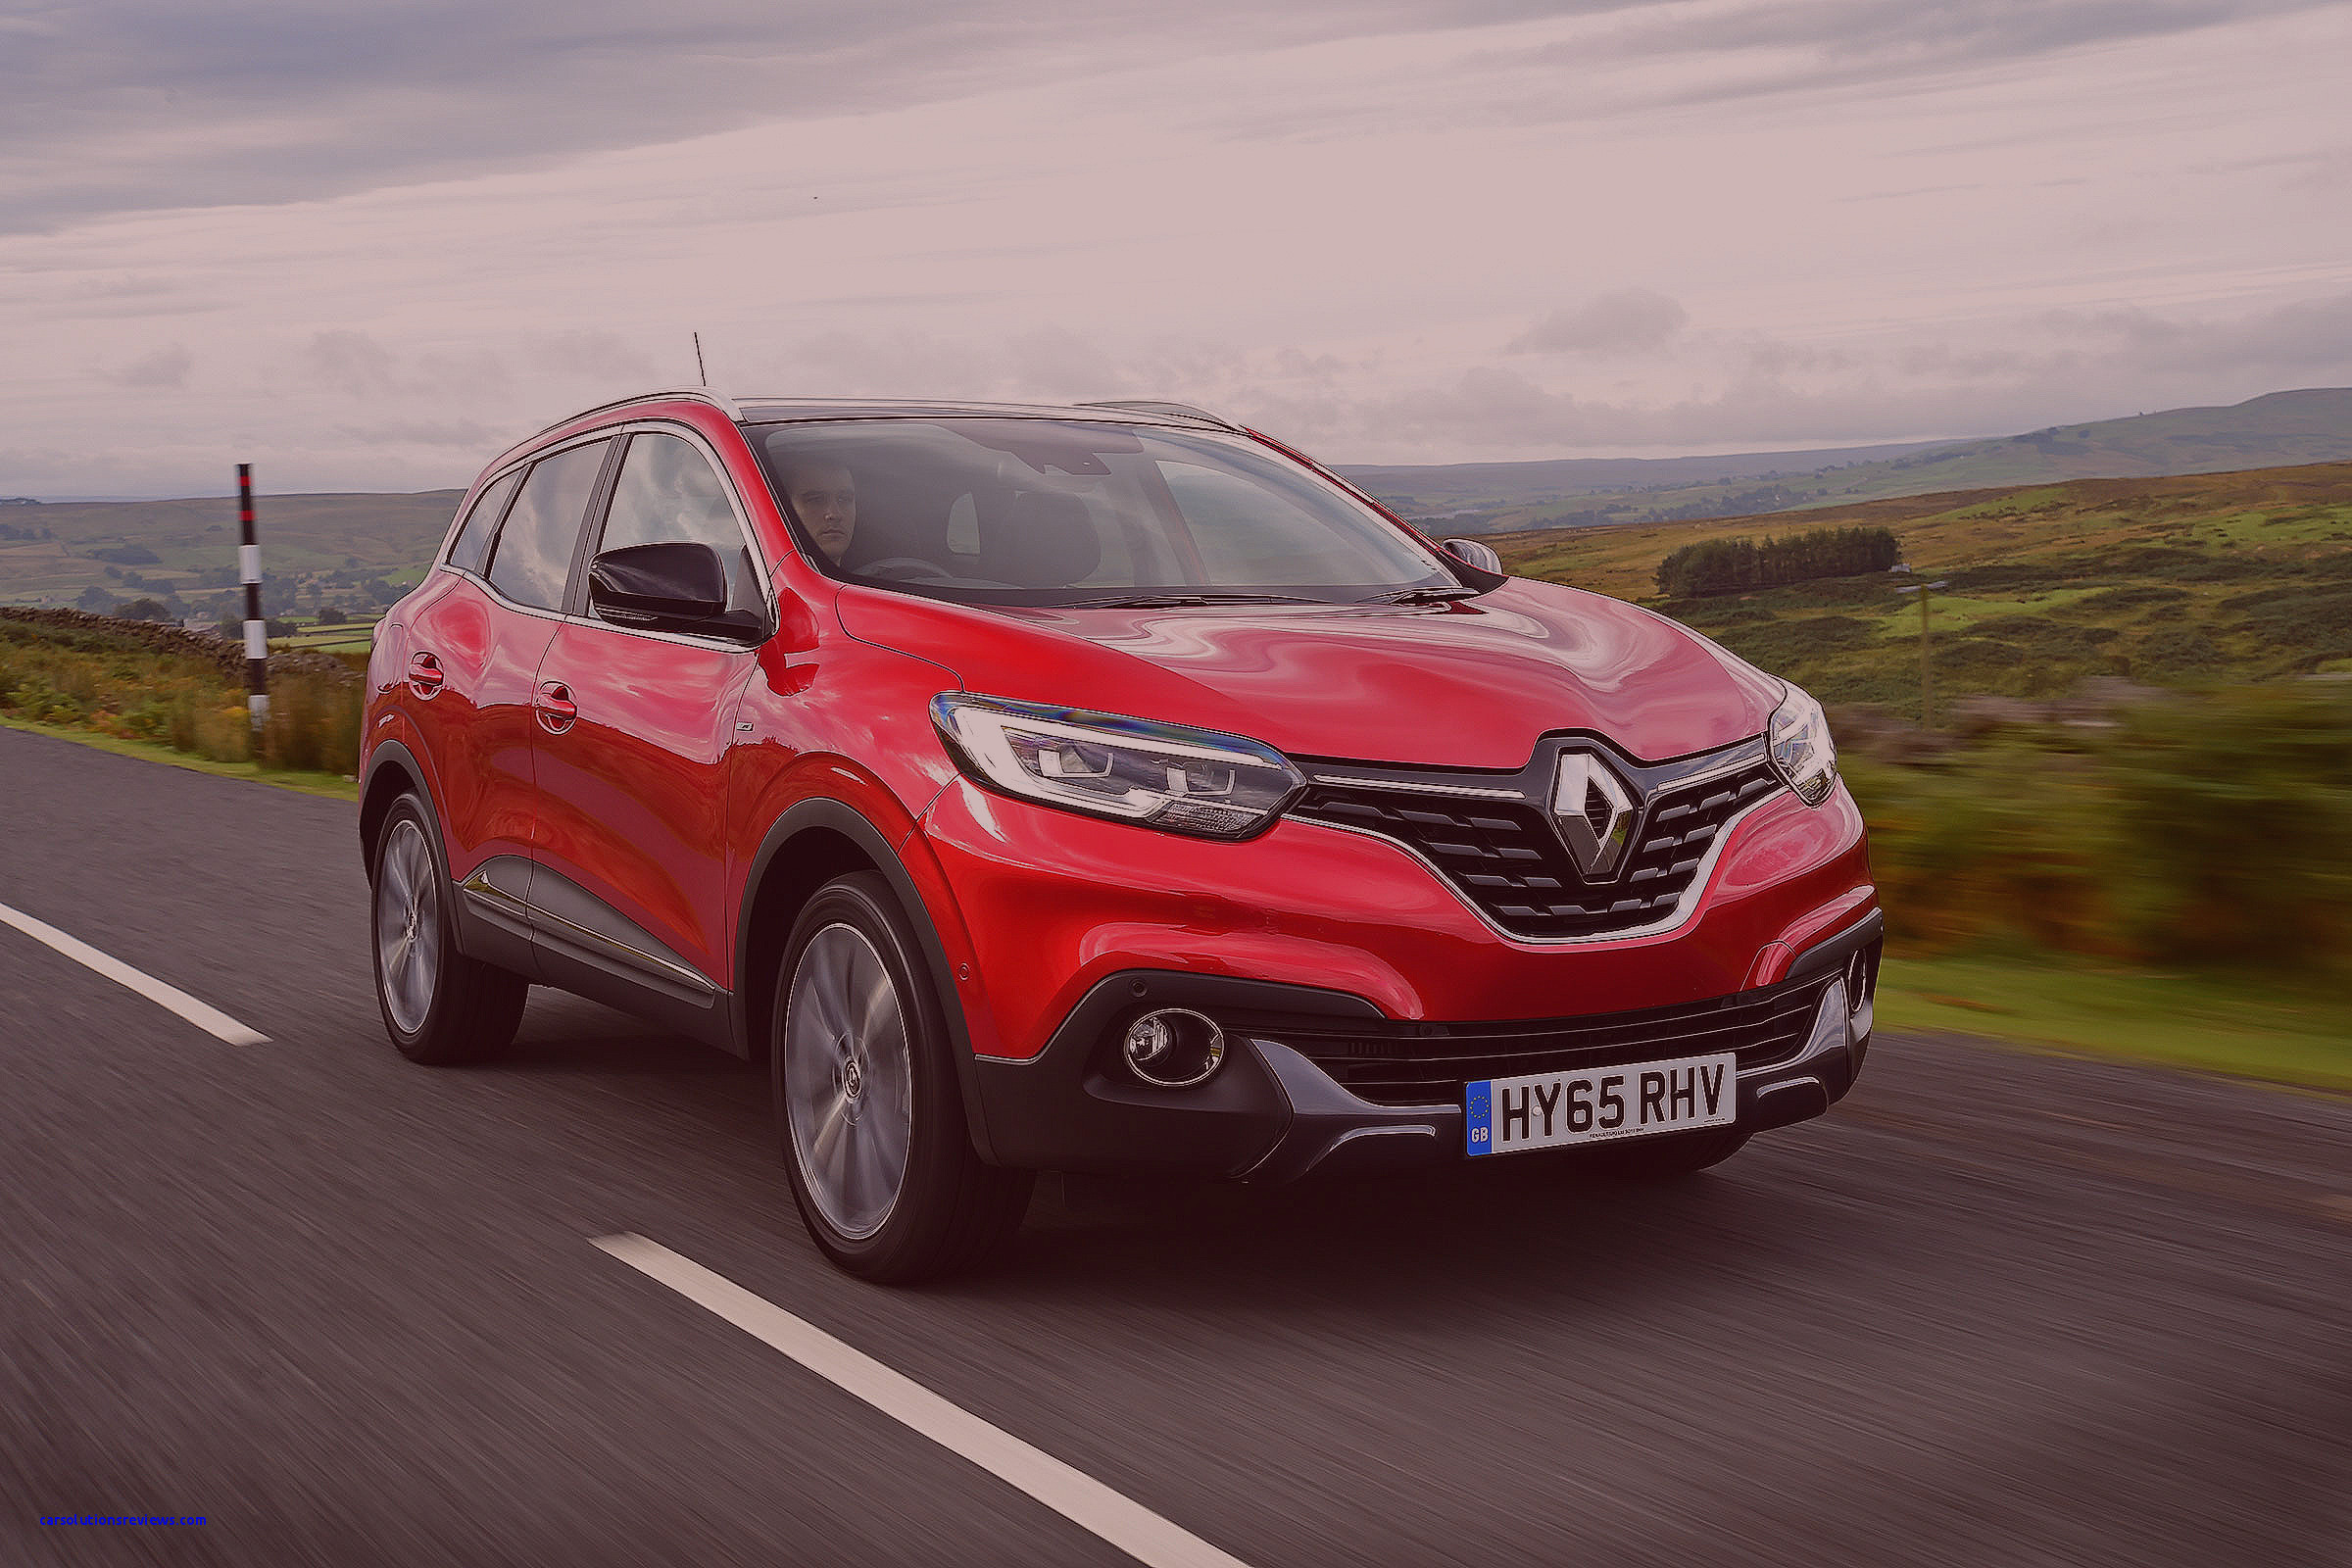 Used Car Ratings Awesome Renault Used Cars Consumer Reports Used Car Ratings the